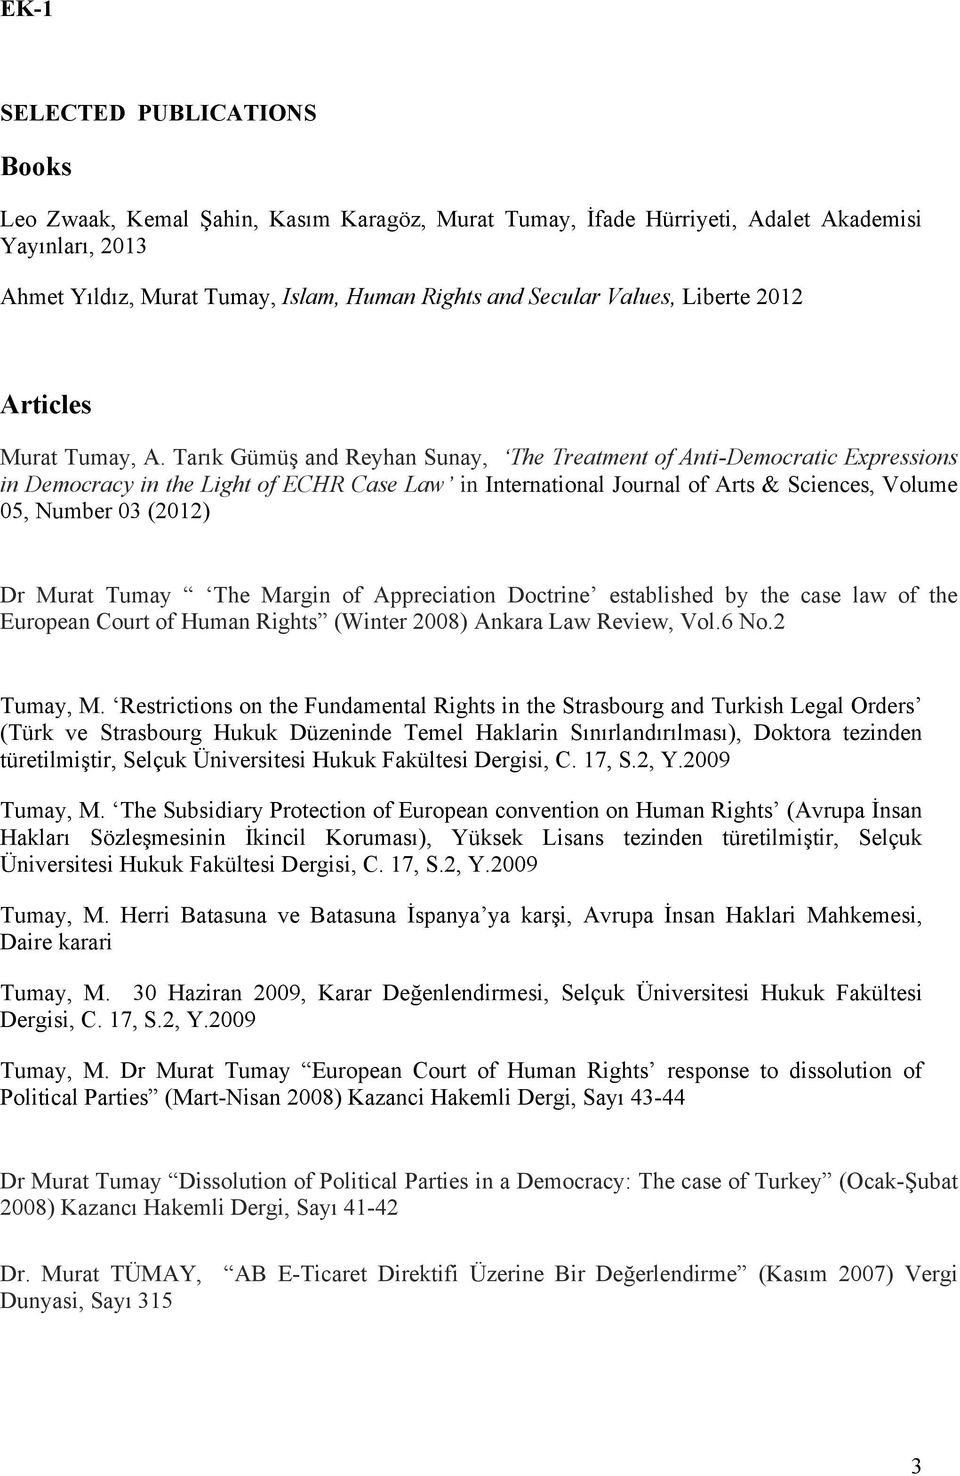 Tarık Gümüş and Reyhan Sunay, The Treatment Anti-Democratic Expressions in Democracy in the Light ECHR Case Law in International Journal Arts & Sciences, Volume 05, Number 03 (2012) Dr Murat Tumay